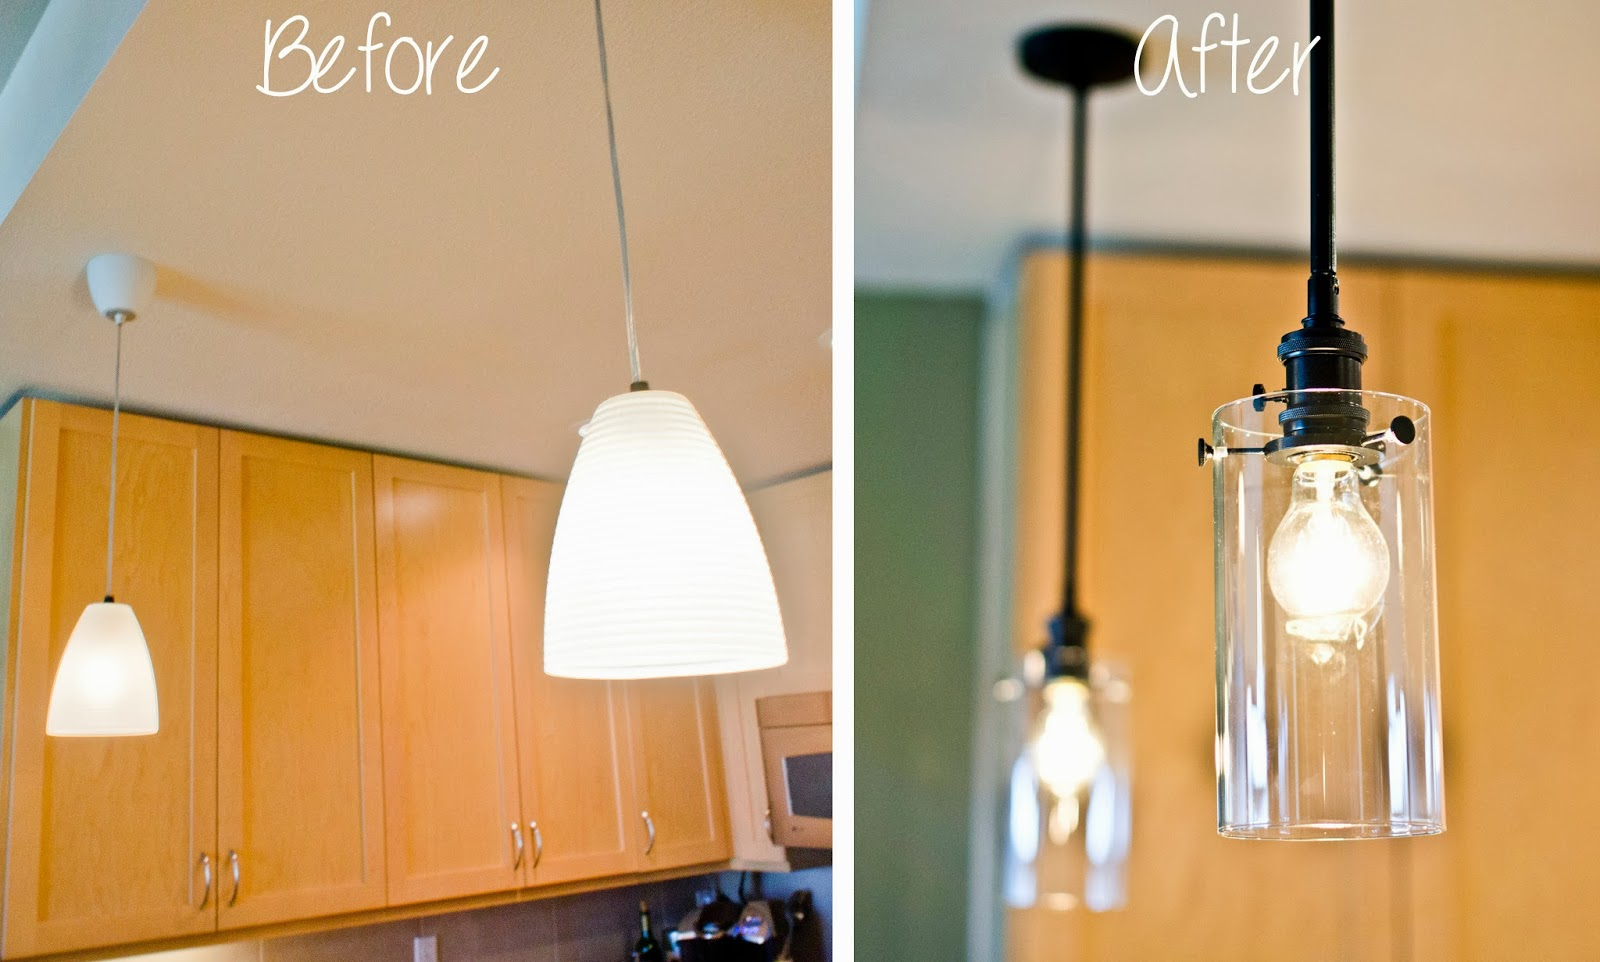 upgrading our kitchen pendant lights kitchen pendant lighting We were on a budget of for each light While searching the web for ideas I came across this photo from Gunkelmans Interior Design via Houzz and